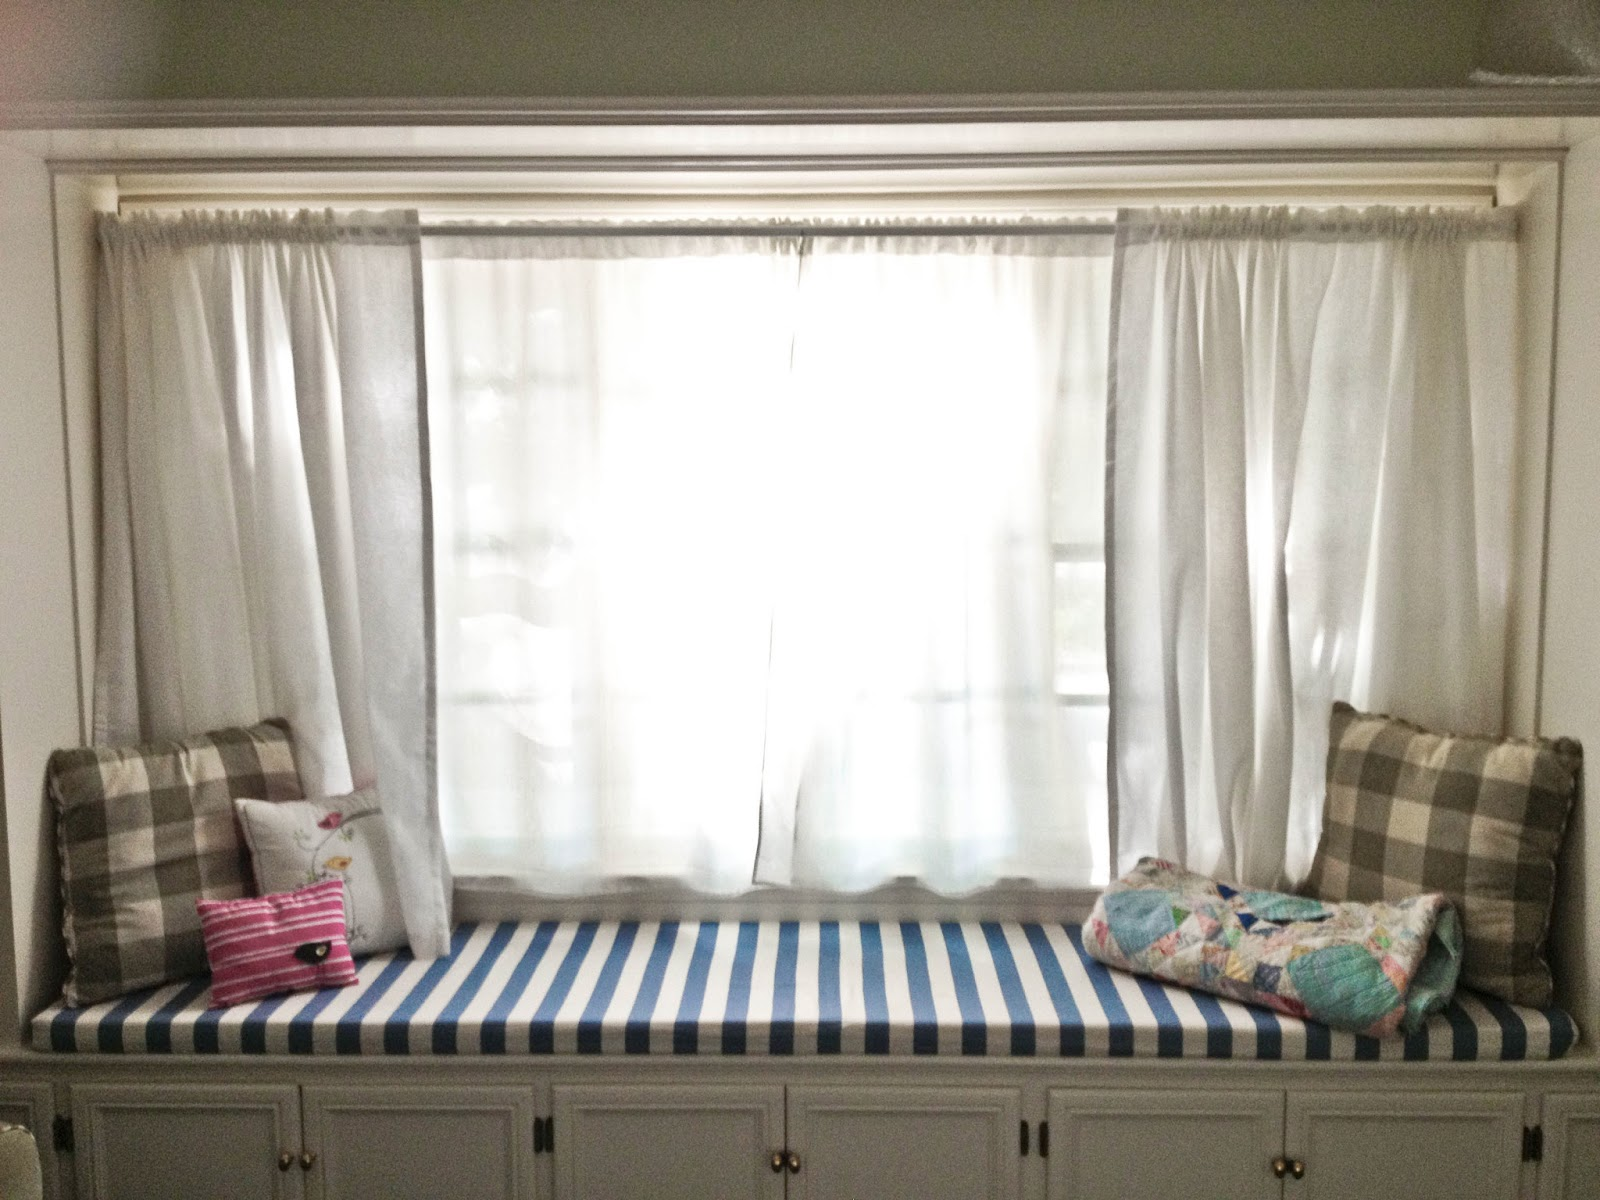 Window treatments for very wide windows - Large Window Curtains Ideas Diy New Curtains Mama Bleu Elegant Wide Window Curtains Of Jacquard Blackout